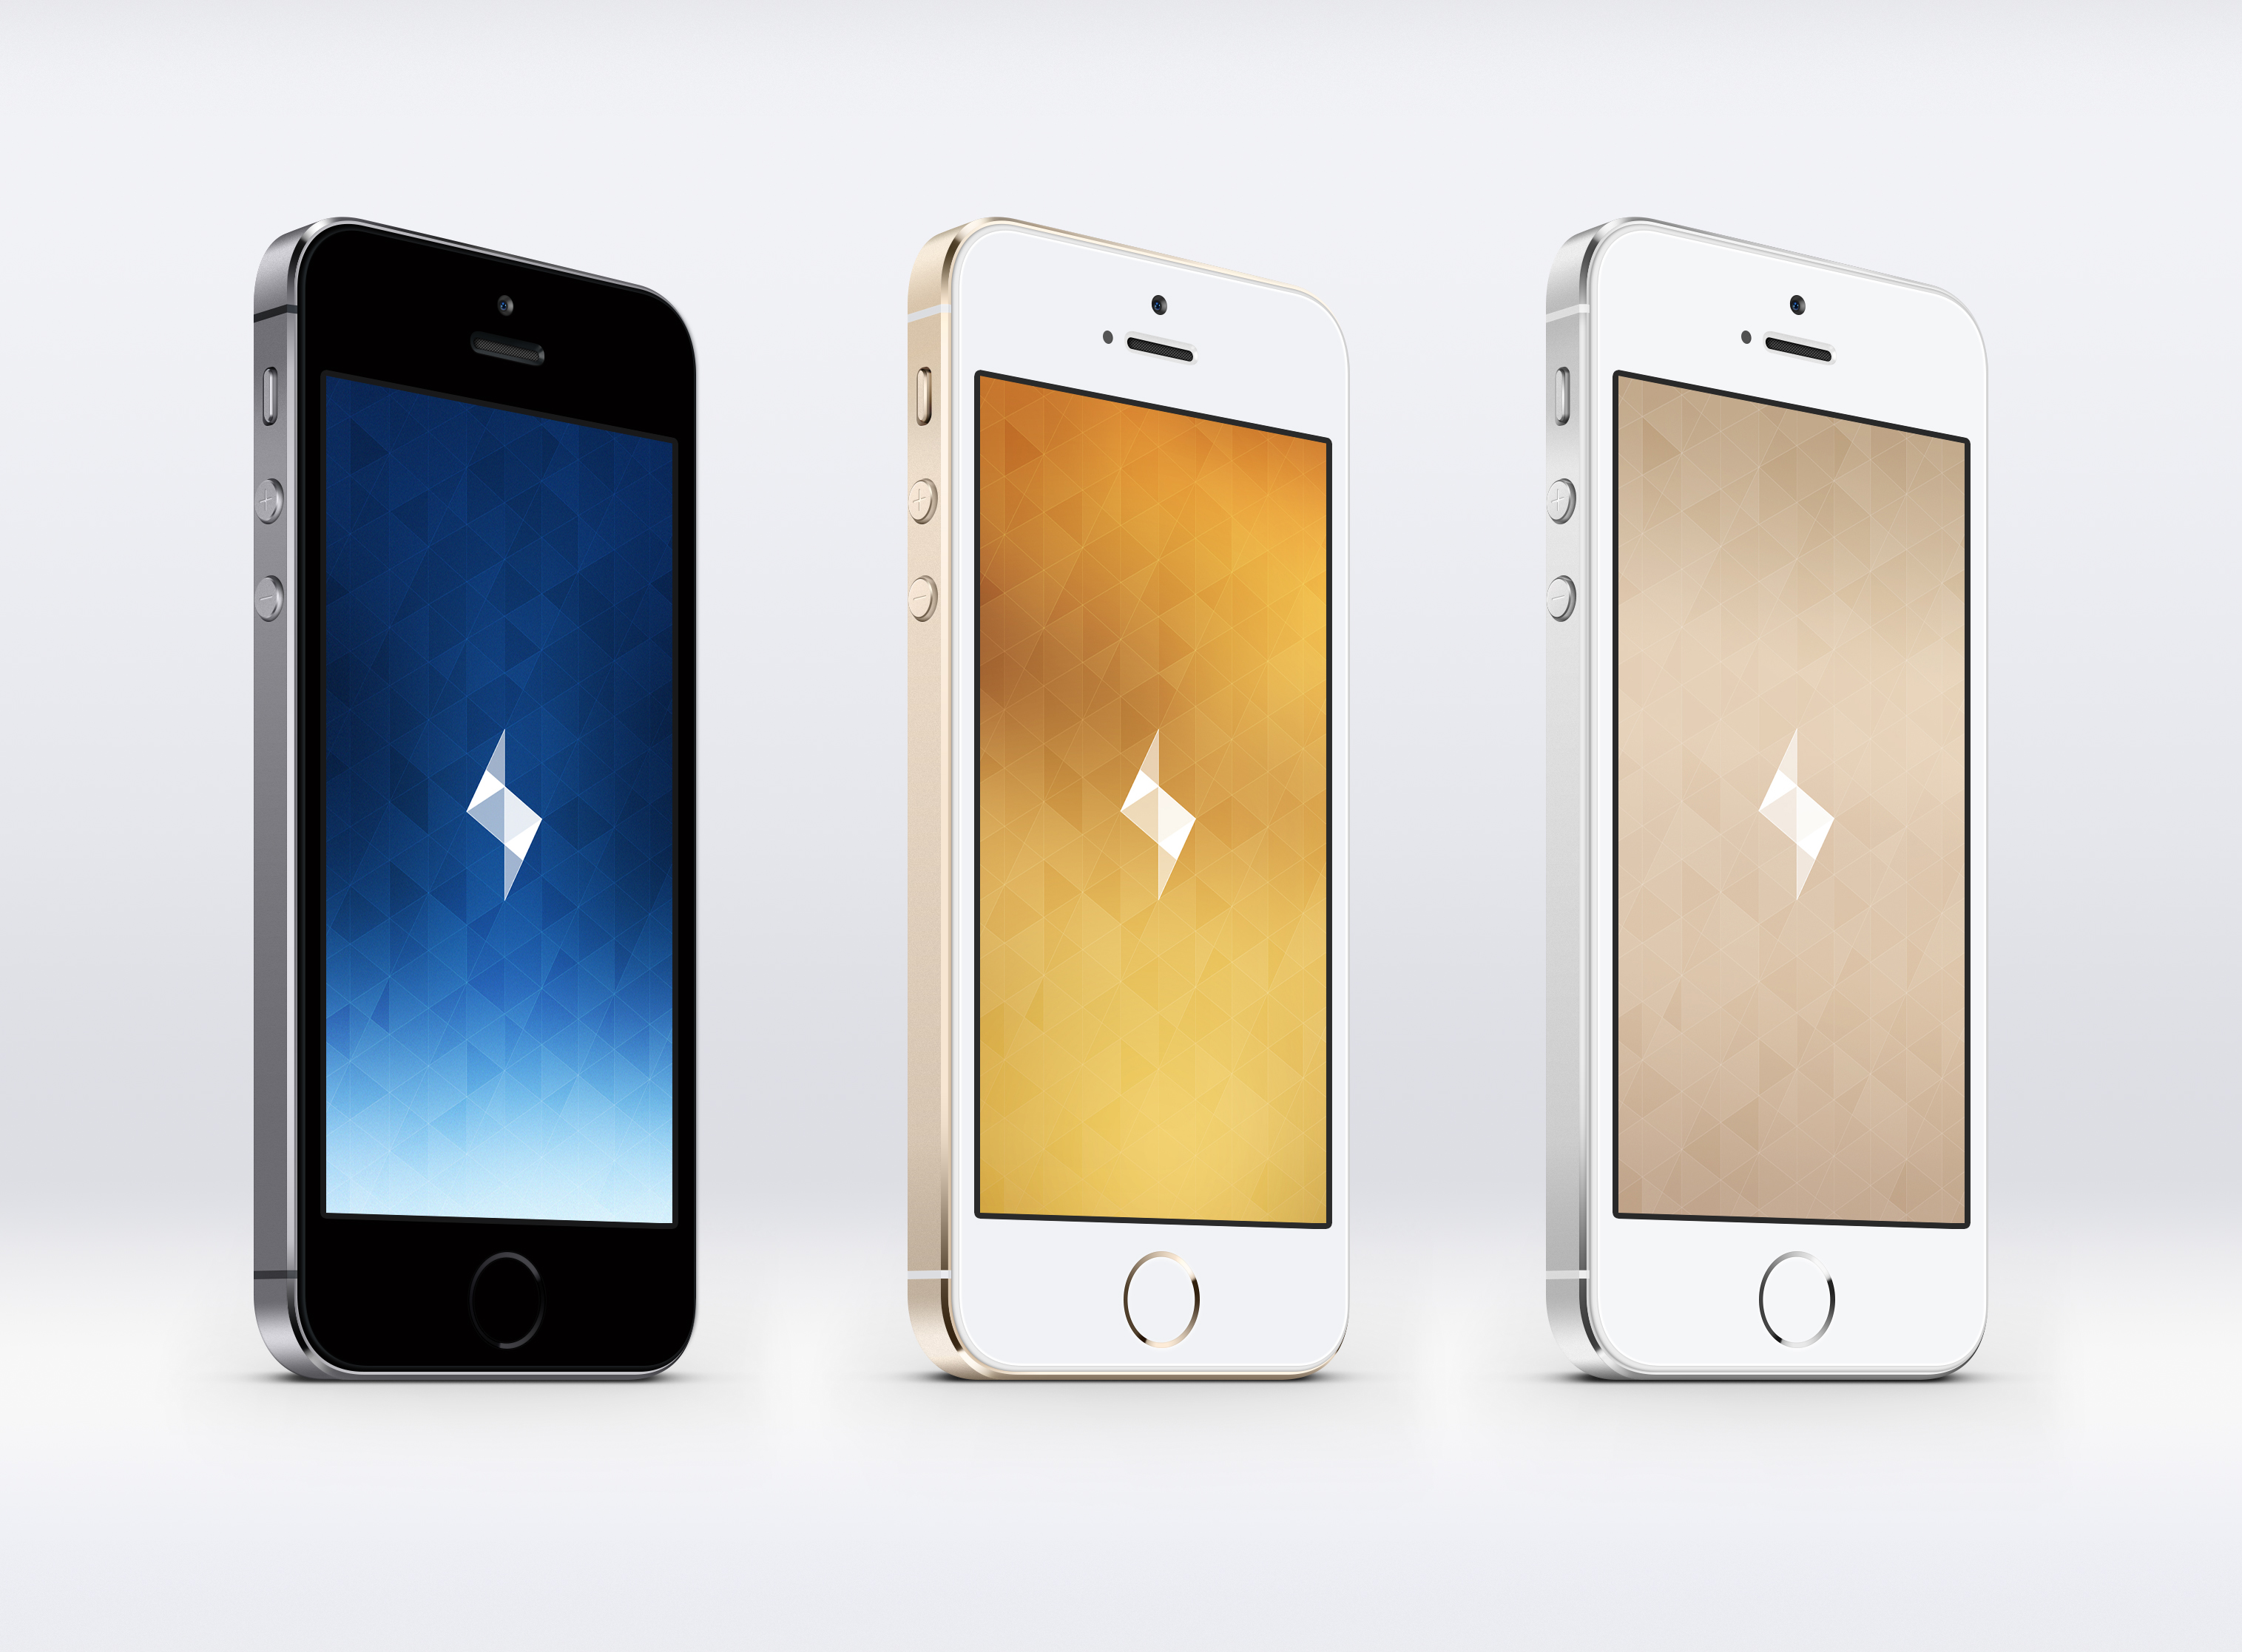 bolt_app_wallpaper_elegance_series_by_jason_zigrino-splash